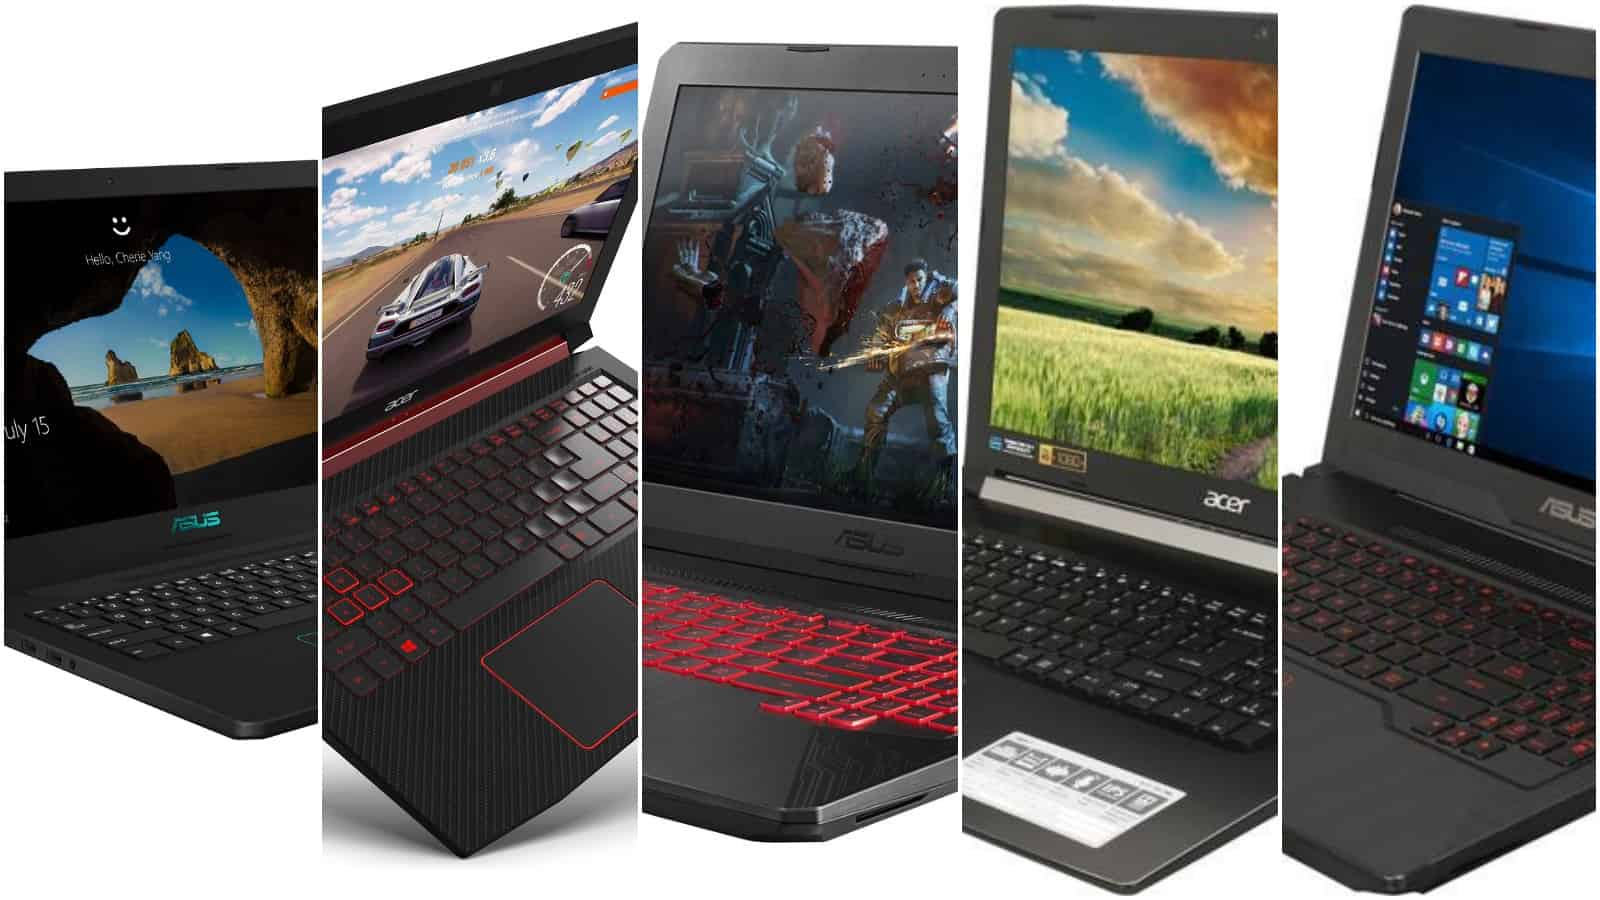 5 Best Gaming Laptops Under $800